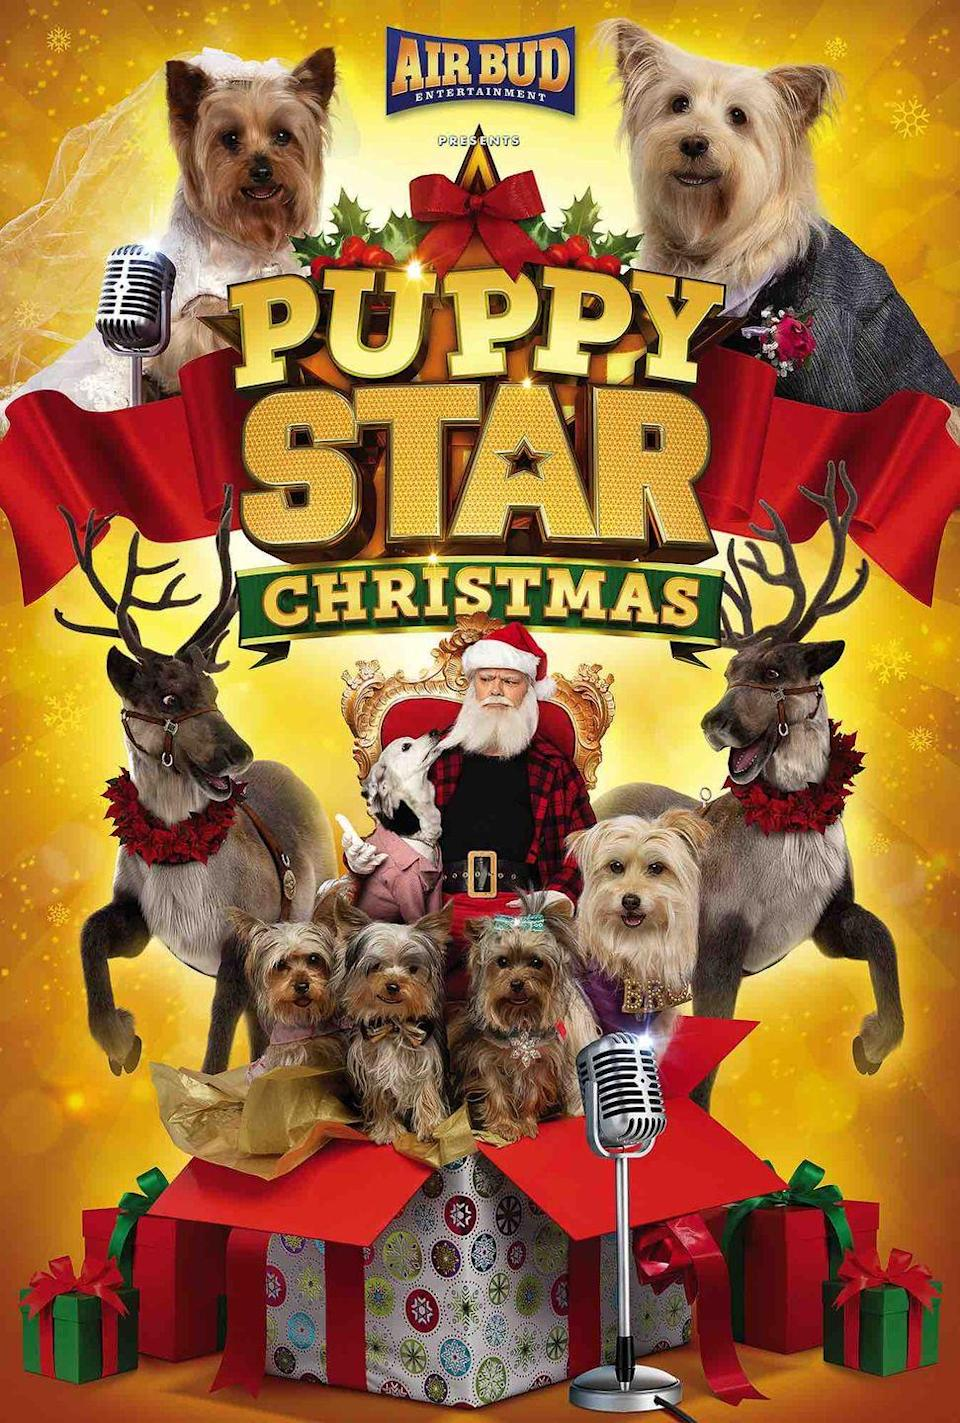 """<p>When a gang of mischievous dogs hijacks Santa Claus and the North Pole, it's up to four brave puppies to save Christmas.</p><p><a class=""""link rapid-noclick-resp"""" href=""""https://www.netflix.com/title/80989043"""" rel=""""nofollow noopener"""" target=""""_blank"""" data-ylk=""""slk:STREAM NOW"""">STREAM NOW</a></p>"""